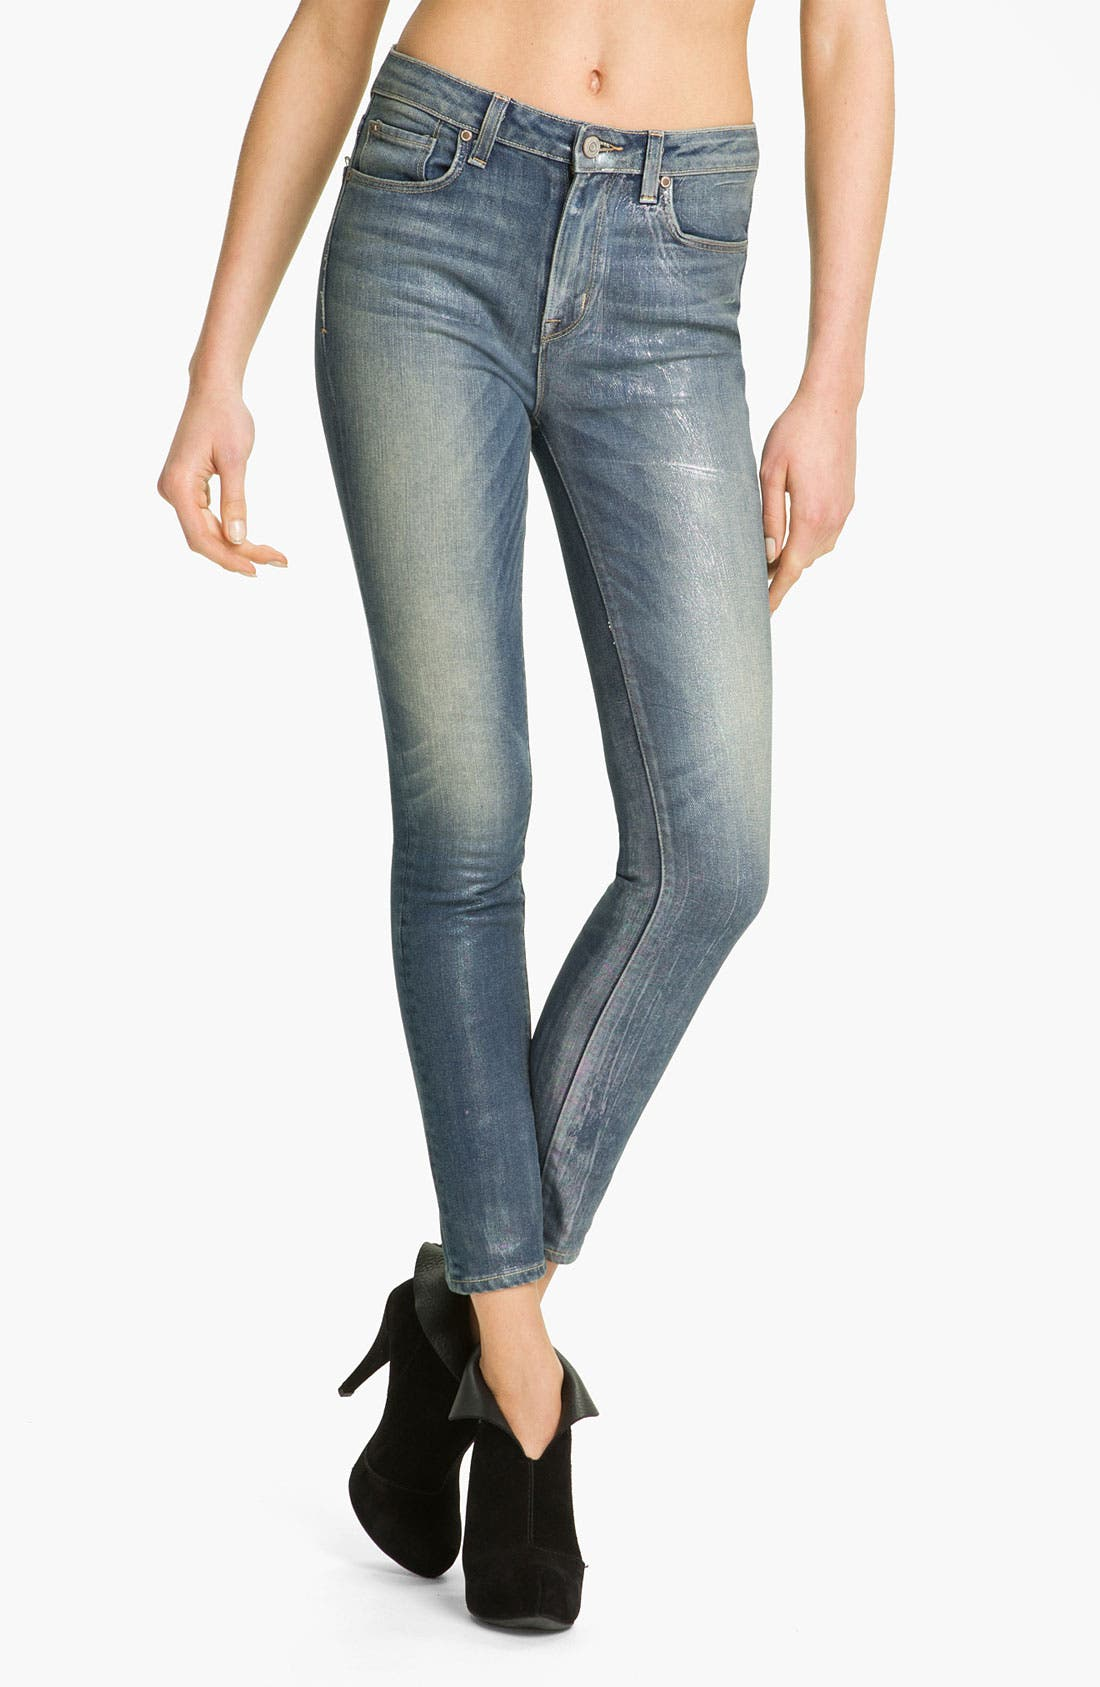 Alternate Image 1 Selected - MARC BY MARC JACOBS 'Sofie' Cigarette Jeans (Vintage Pearl)